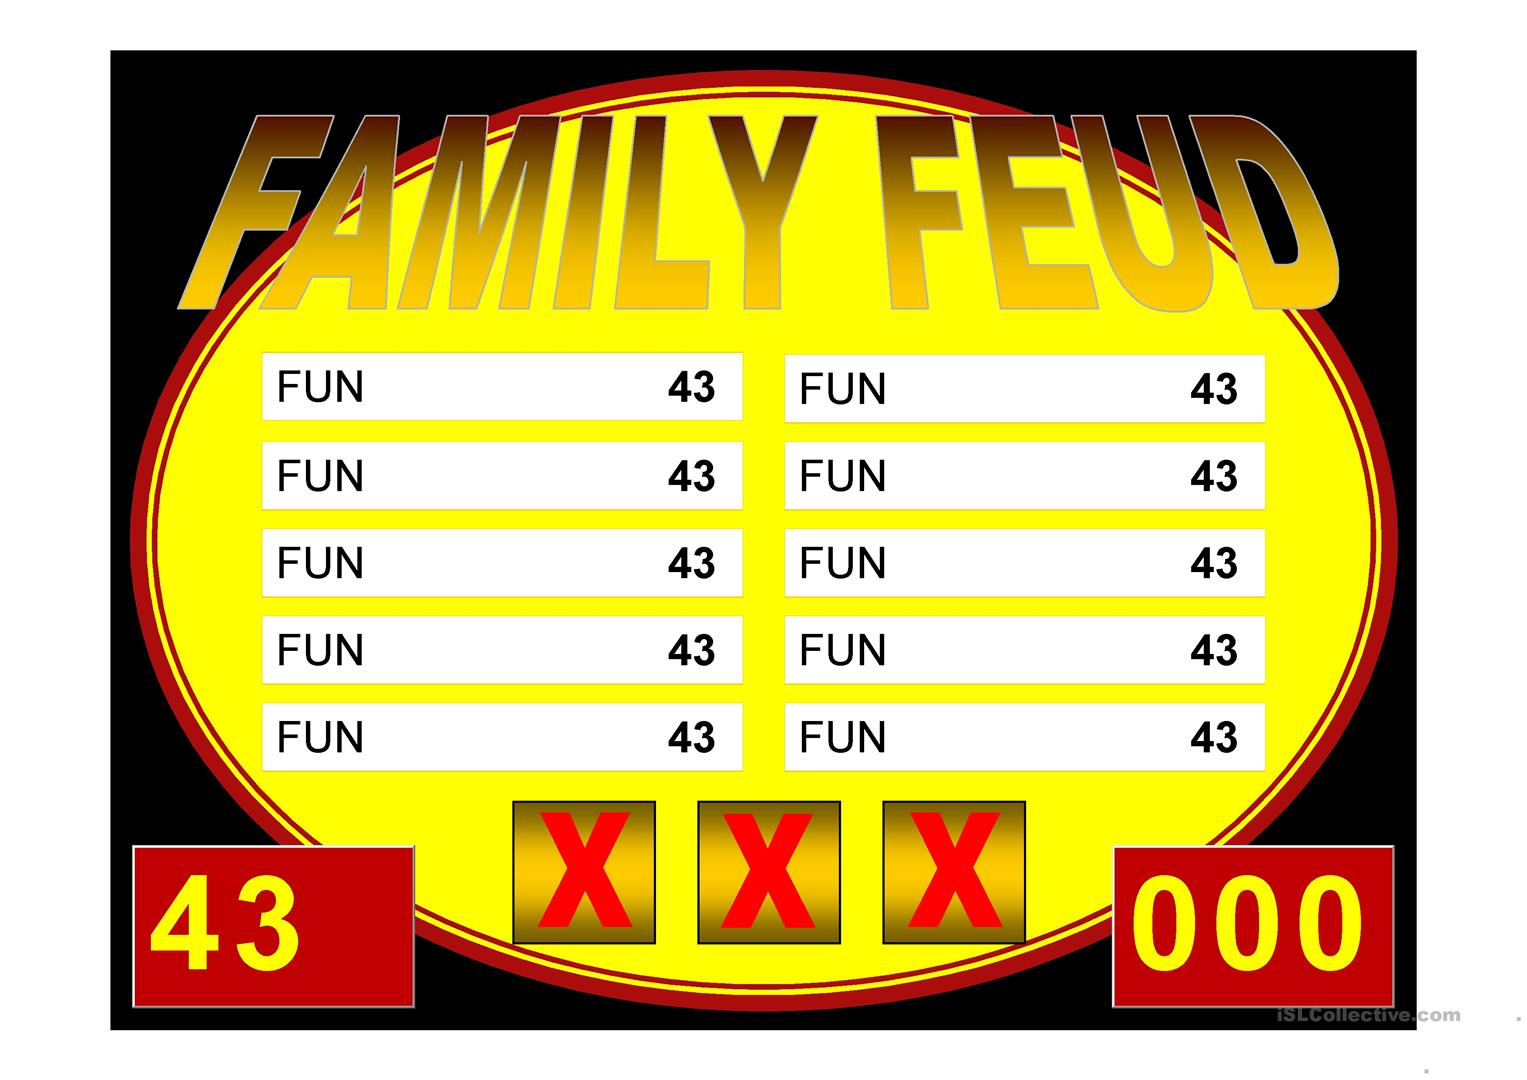 family feud game powerpoint template image collections - templates, Powerpoint templates